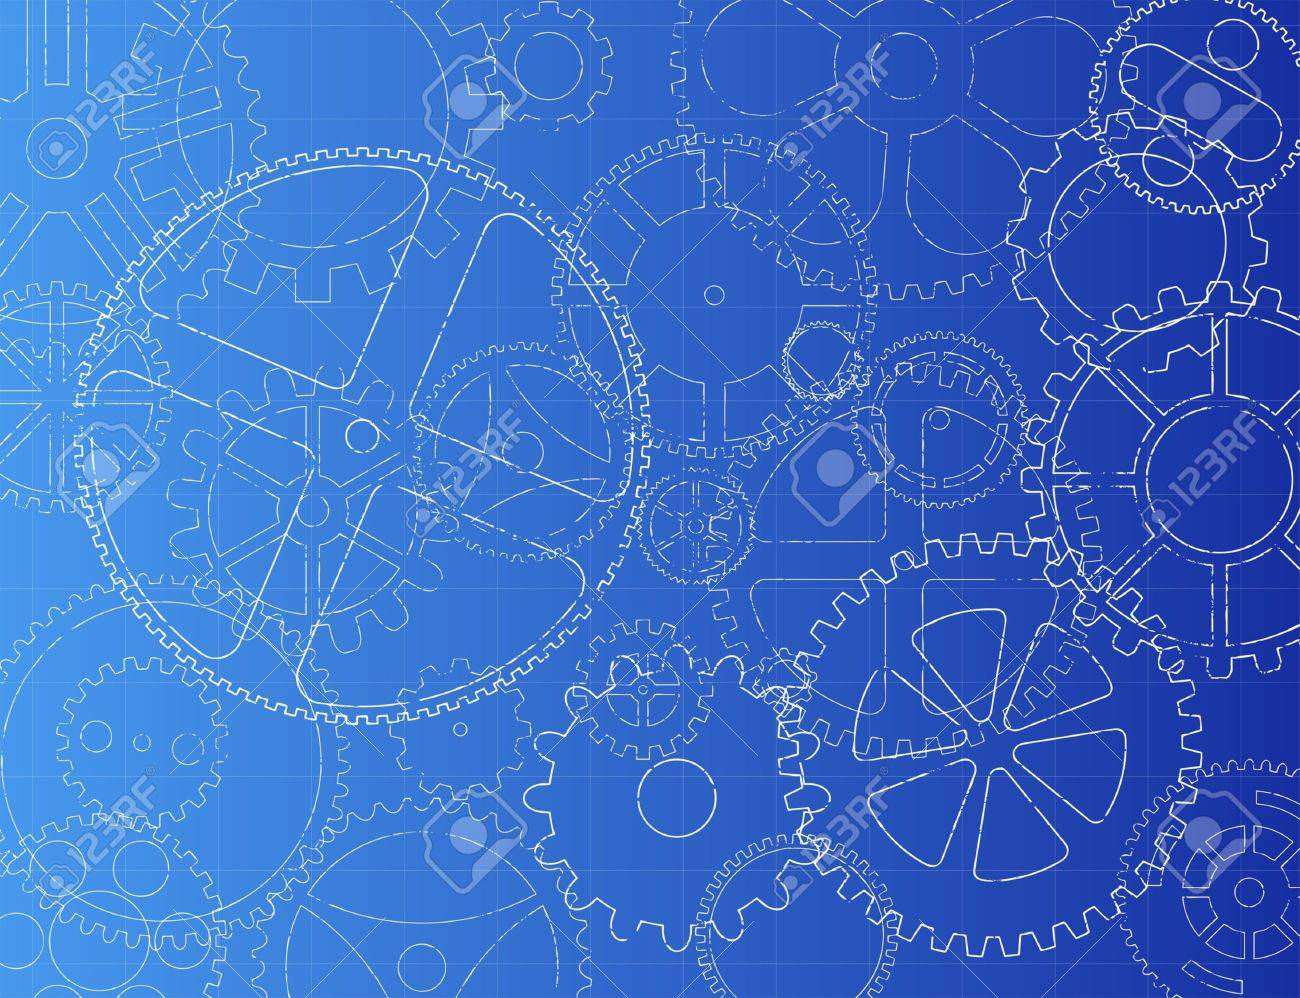 Grungy technical gears illustration on blue background - 16082227